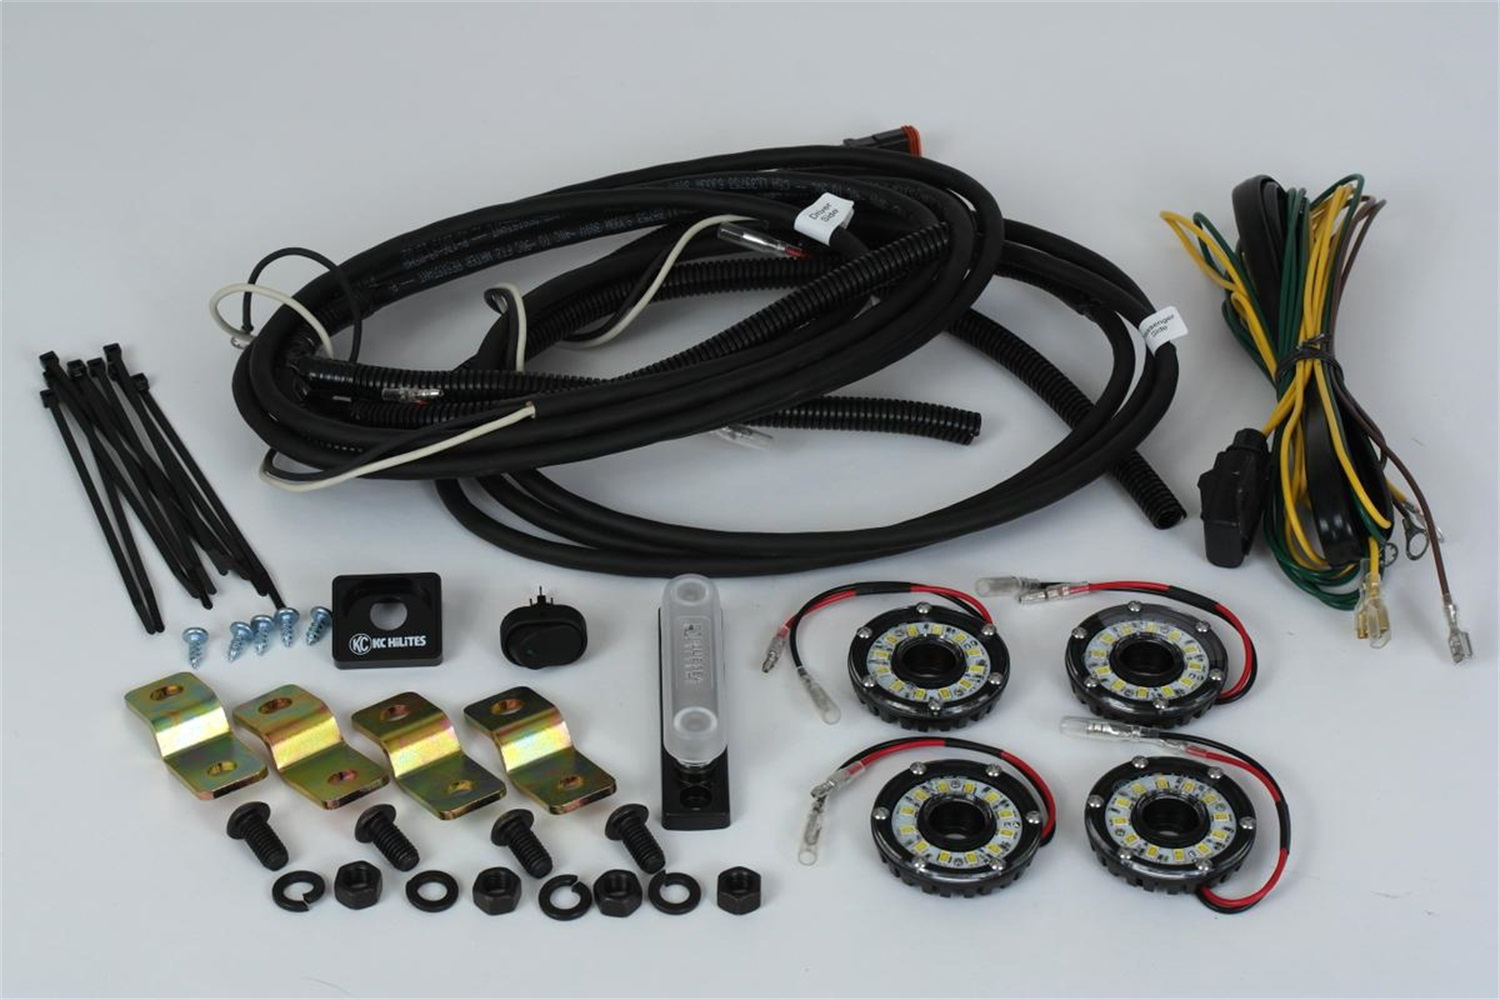 hight resolution of kc hilites 91020 cyclone led rock light kit clear 4 pc incl cyclone lights hi capacity busbar deluxe wiring harness mounts w complete installation